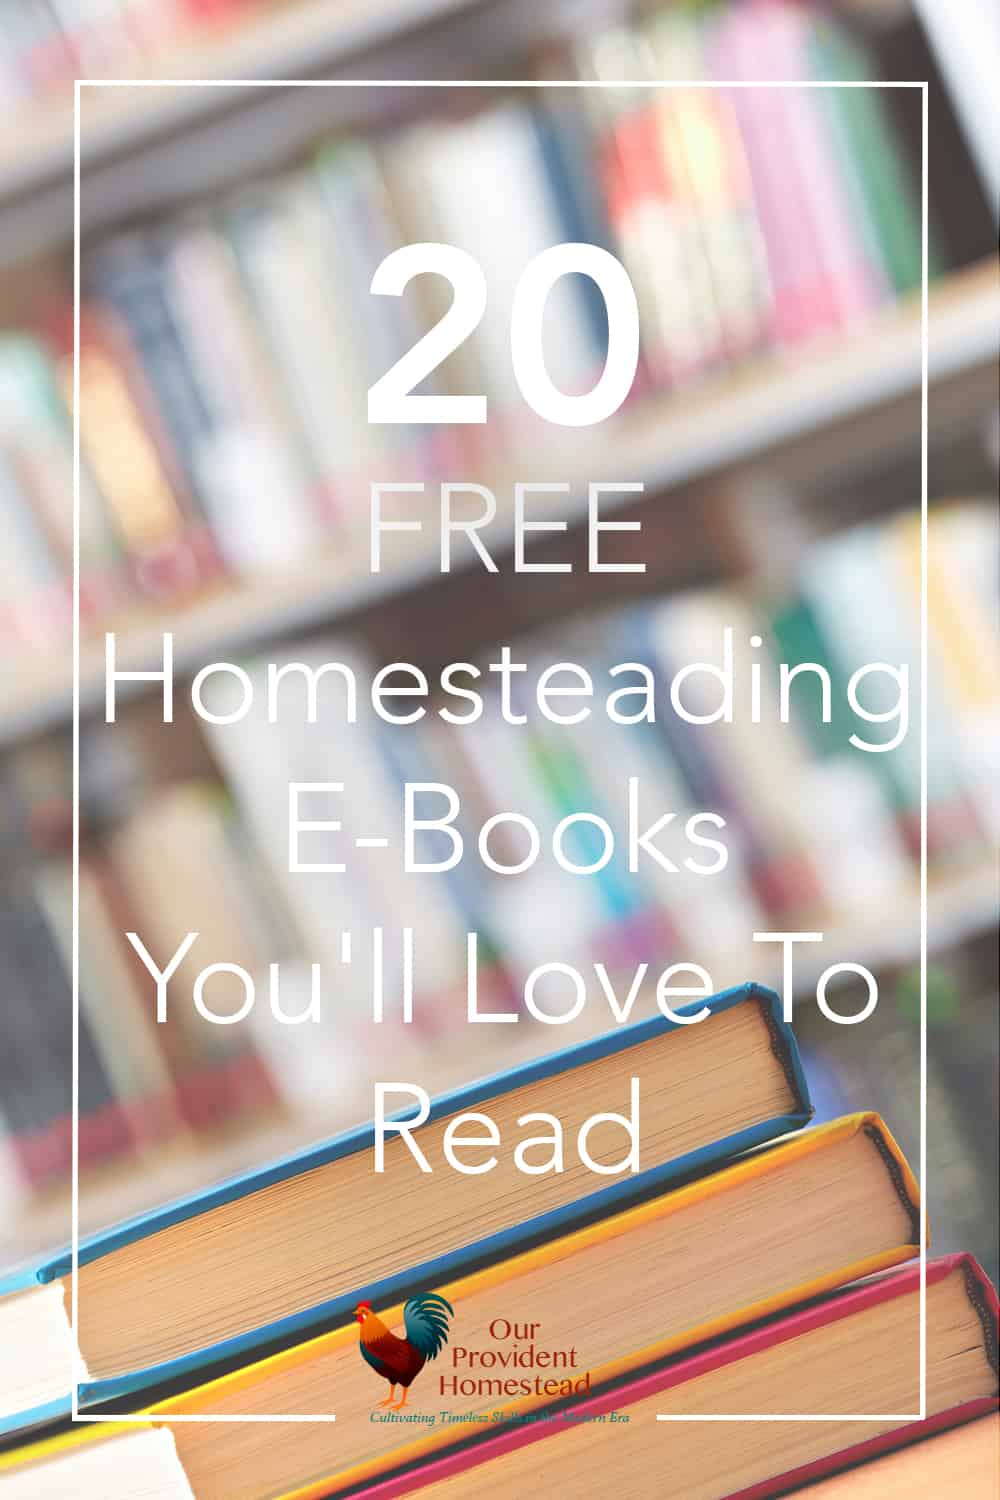 Free is good, right? Click here to 20 free homesteading e-books you'll love and get started on your homesteading dream today. #freebie #homesteader #homesteading #beginnerhomesteader